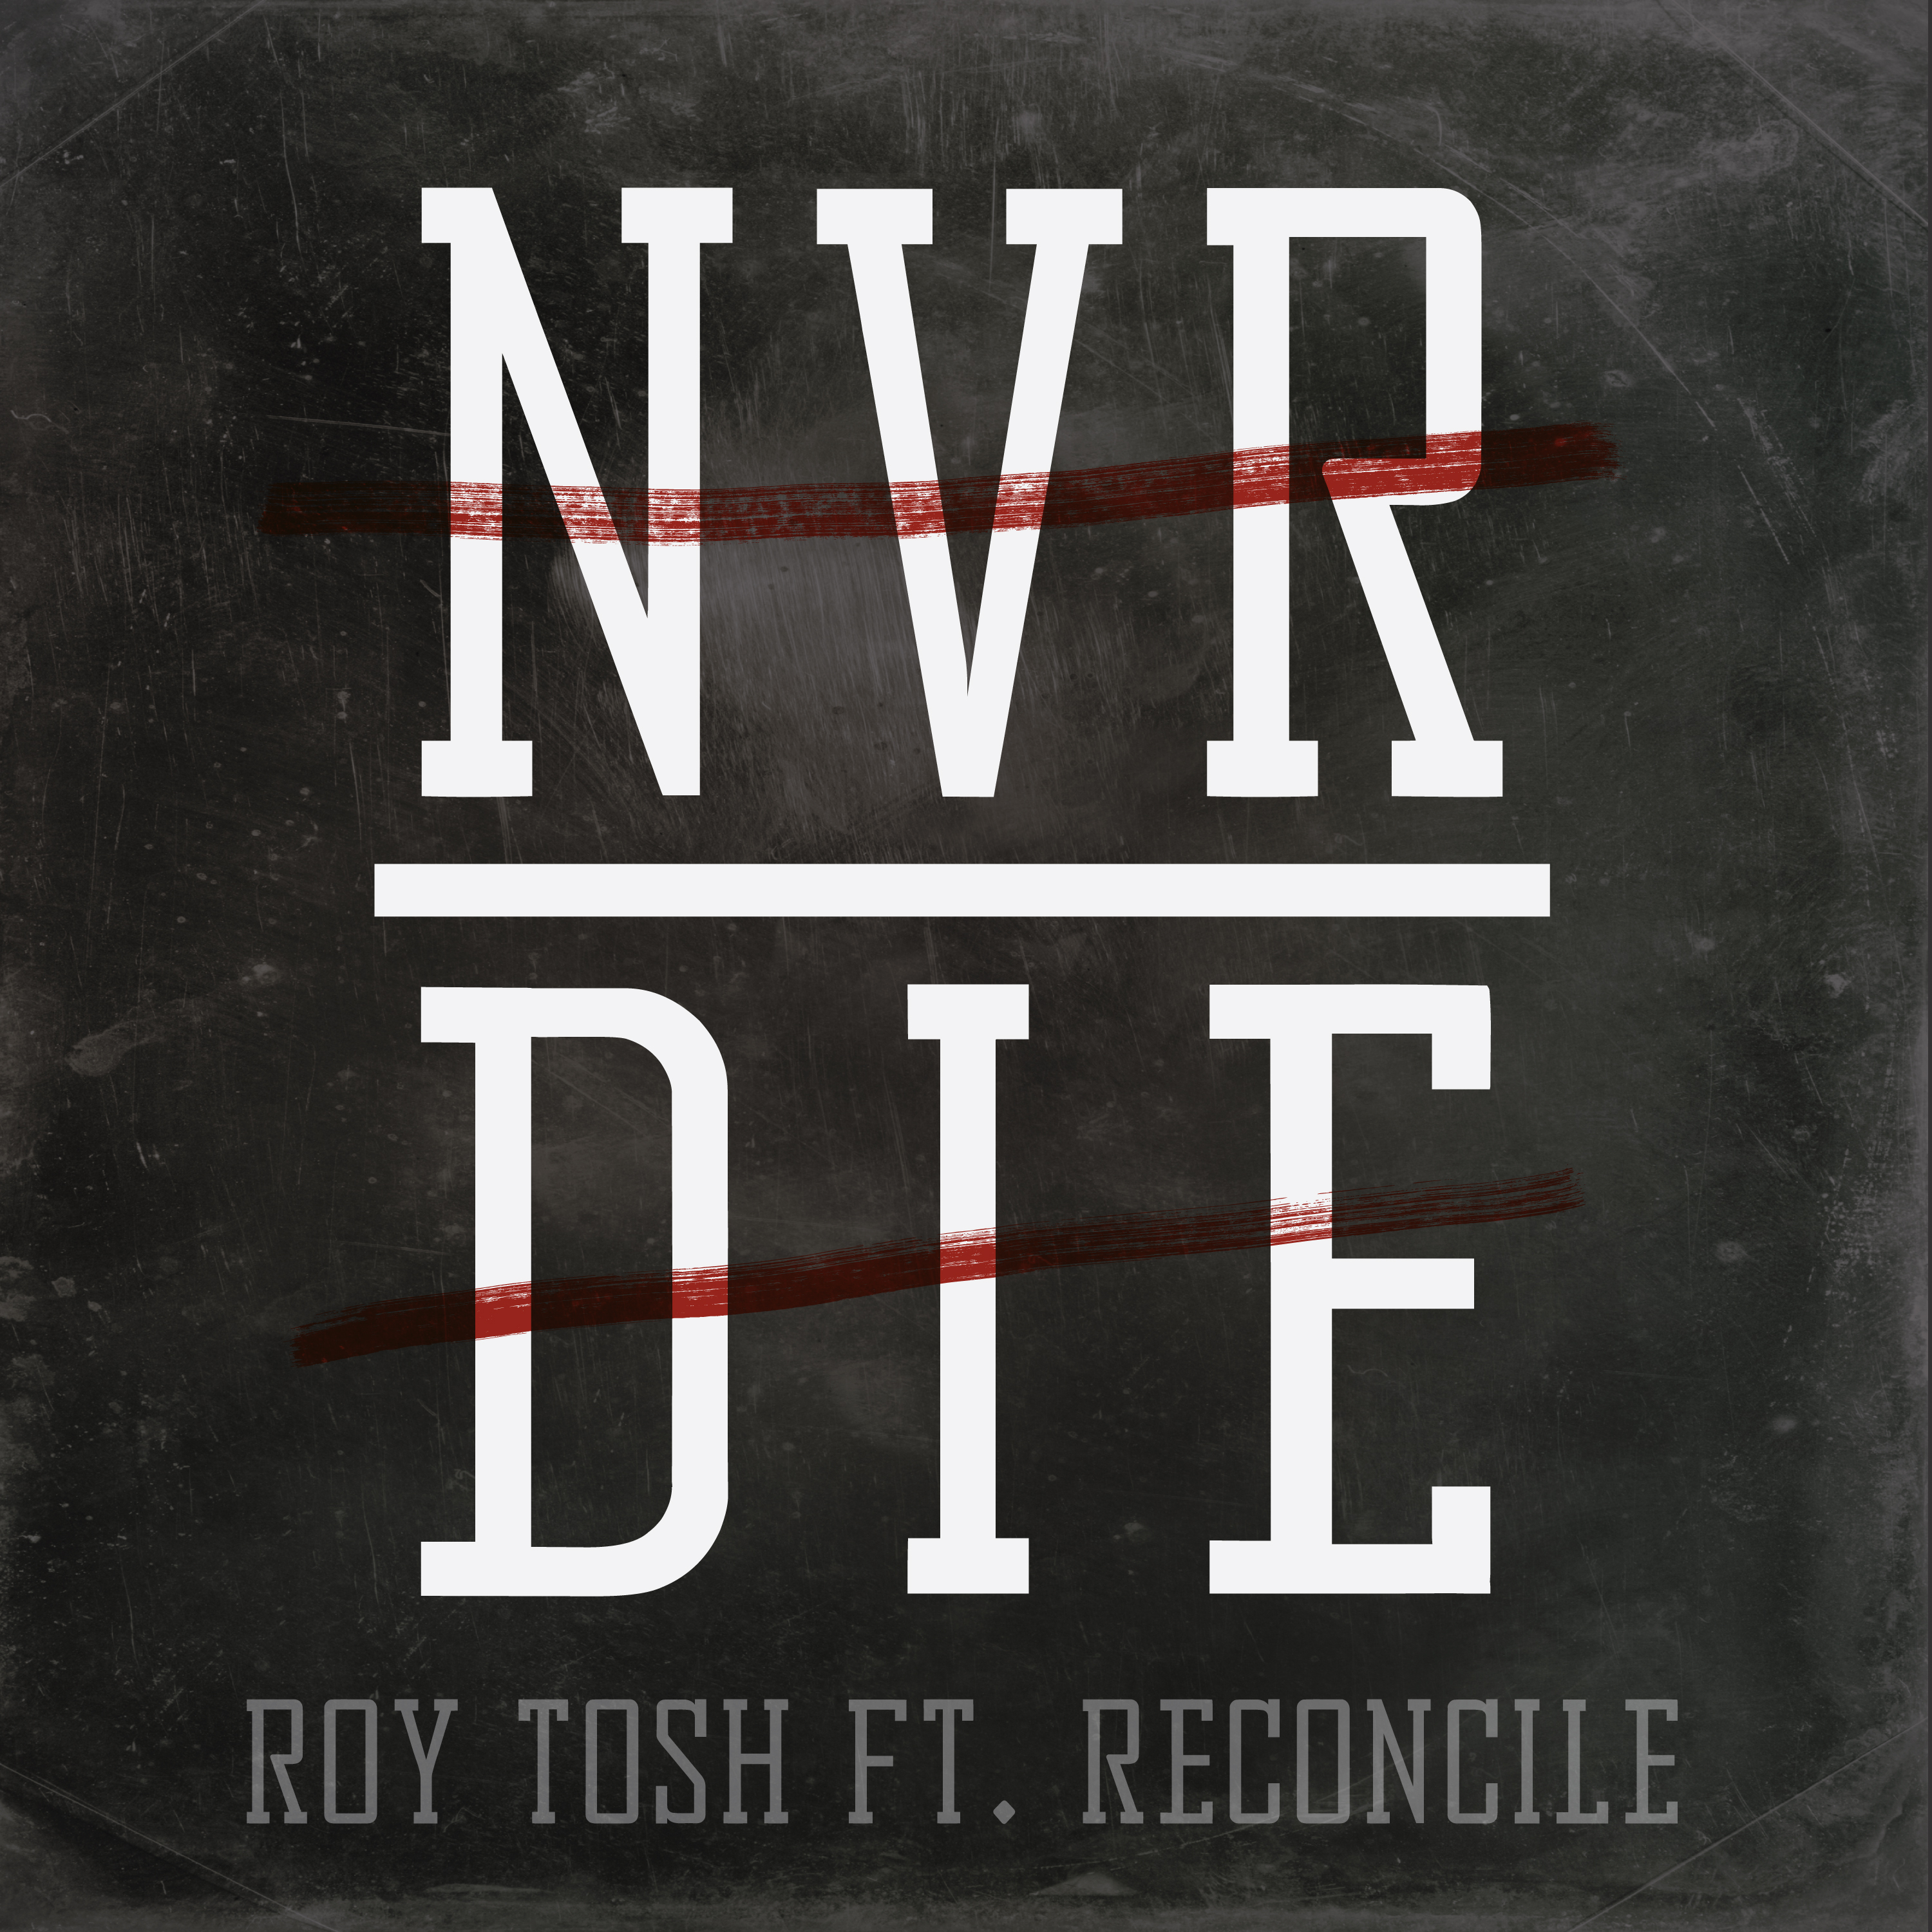 NEW SINGLE 'NEVER DIE' F. RECONCILE